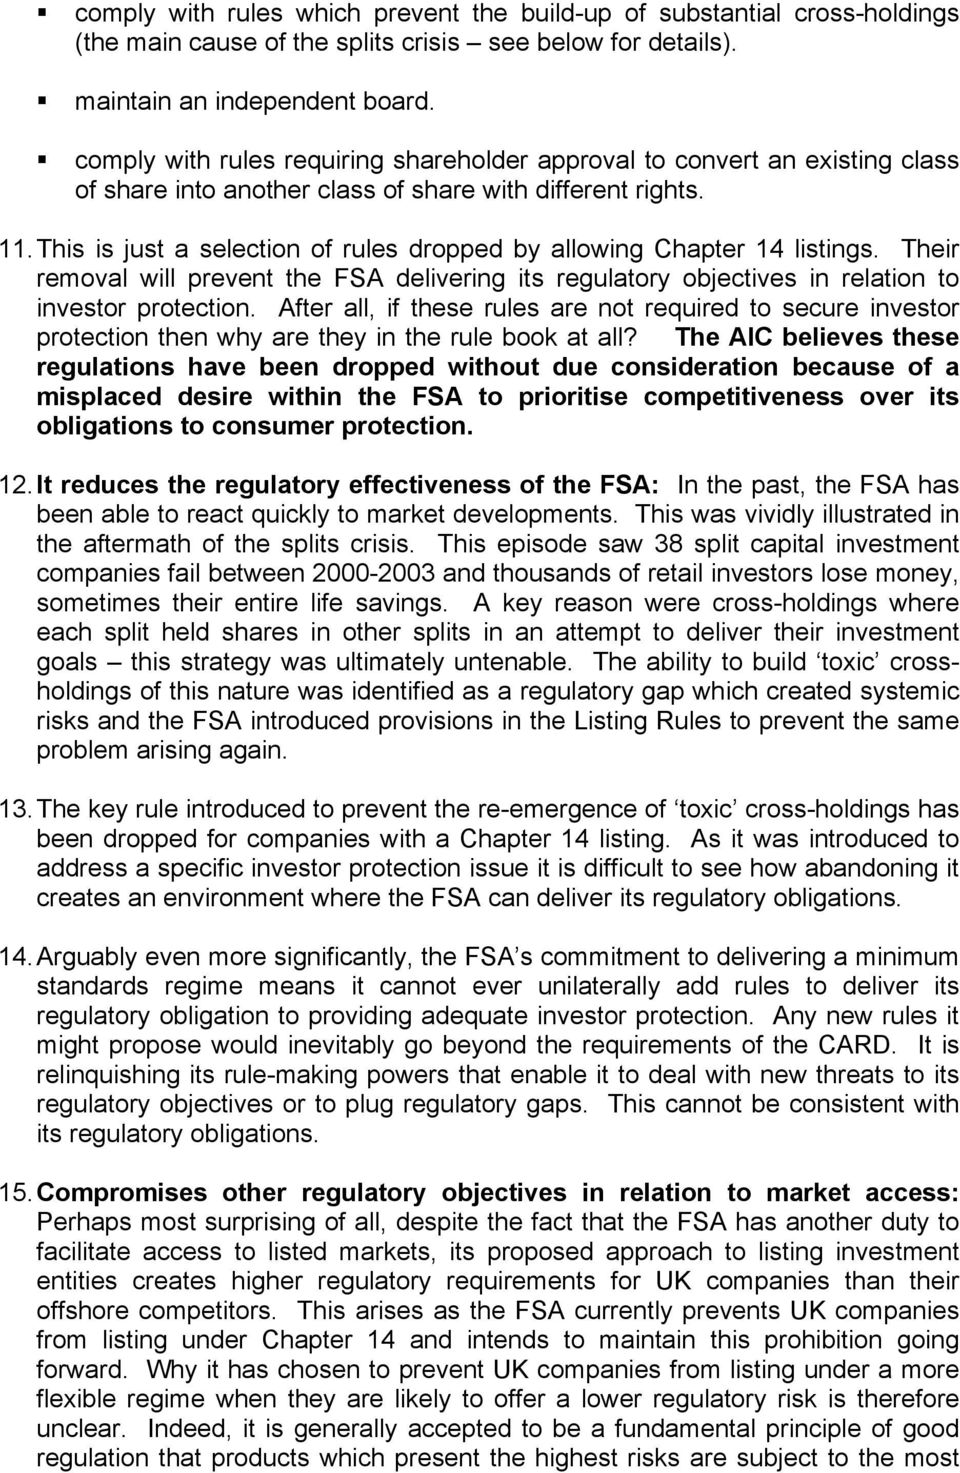 This is just a selection of rules dropped by allowing Chapter 14 listings. Their removal will prevent the FSA delivering its regulatory objectives in relation to investor protection.